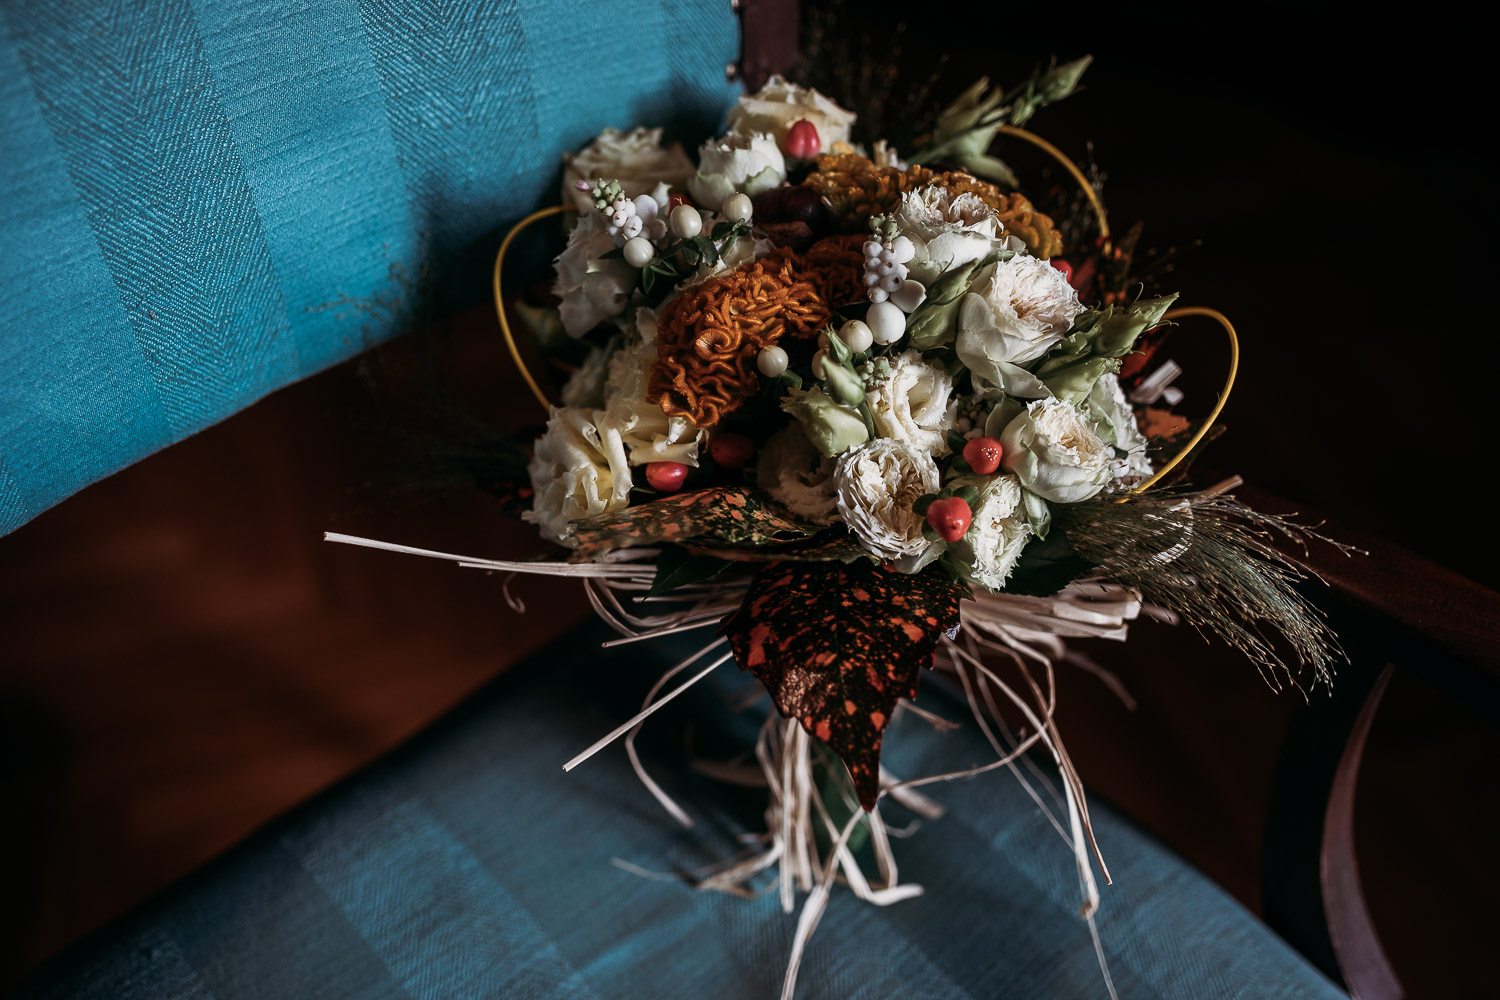 Autumnal bouquet with red berries and orange details